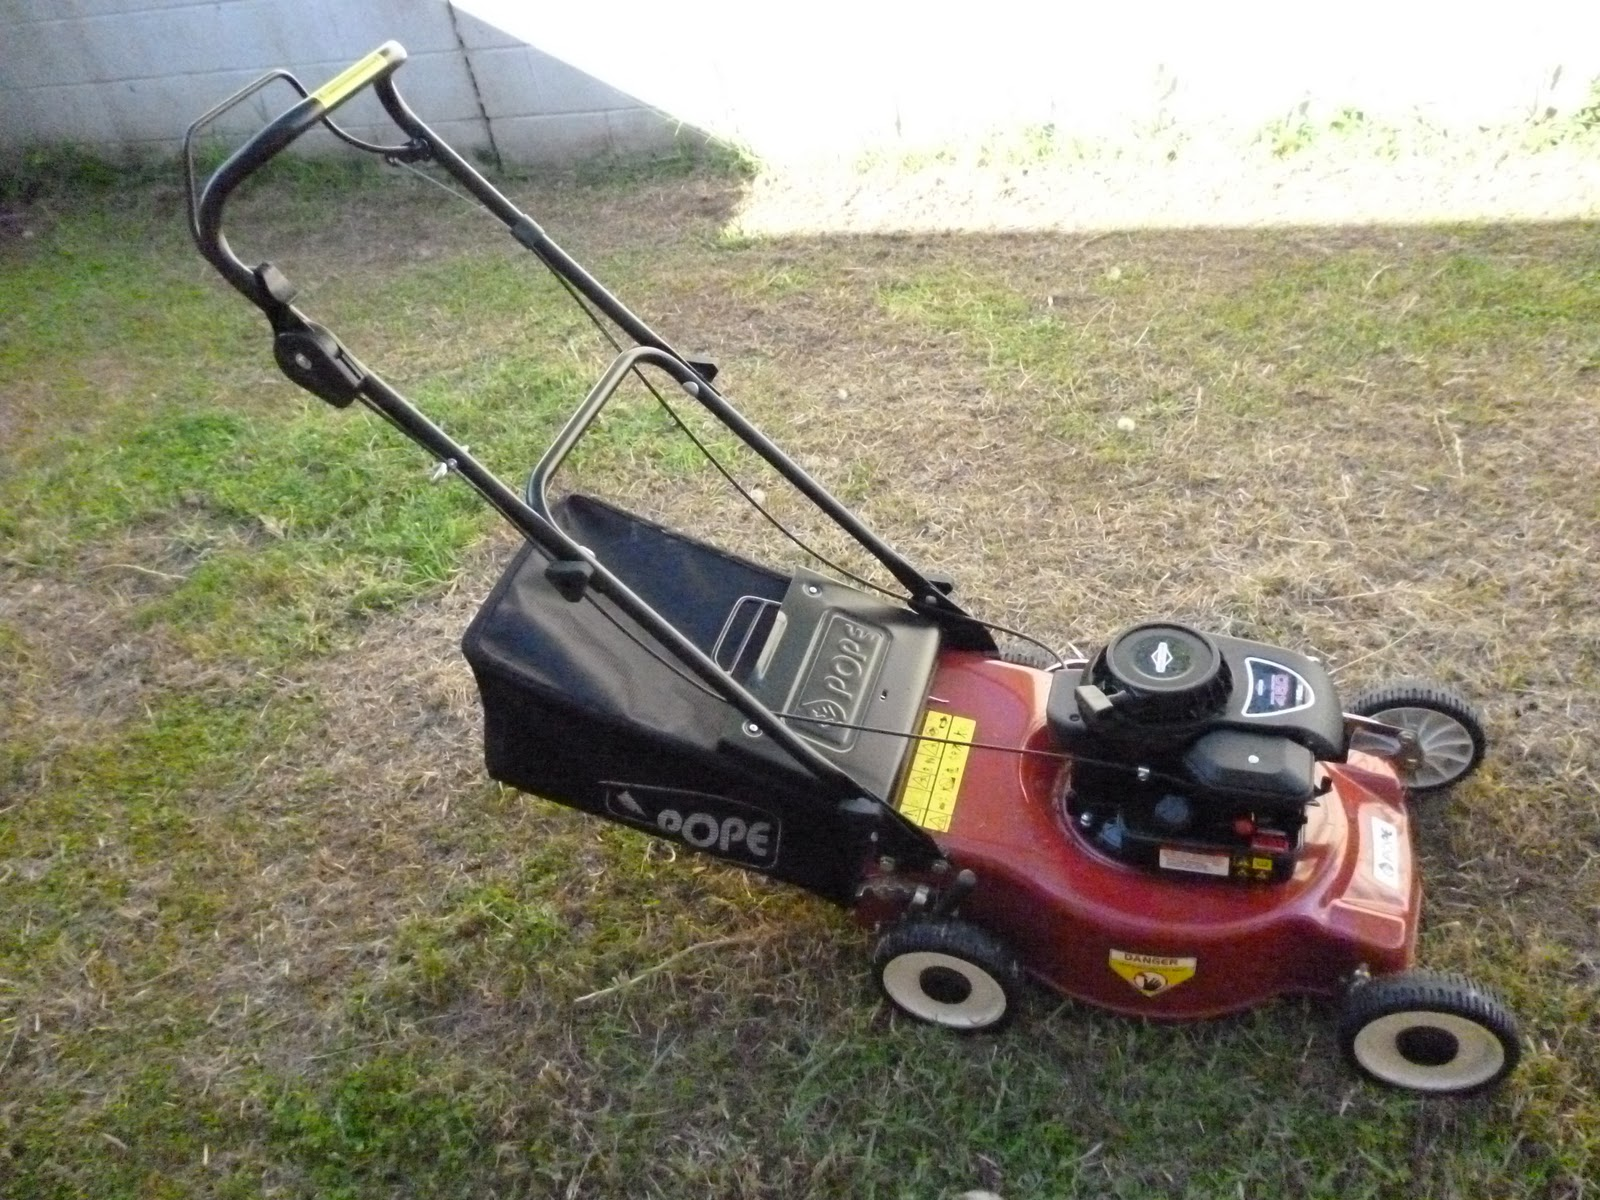 Technology Old And New Pope 101pm450 Lawn Mower Powered By Briggs Stratton